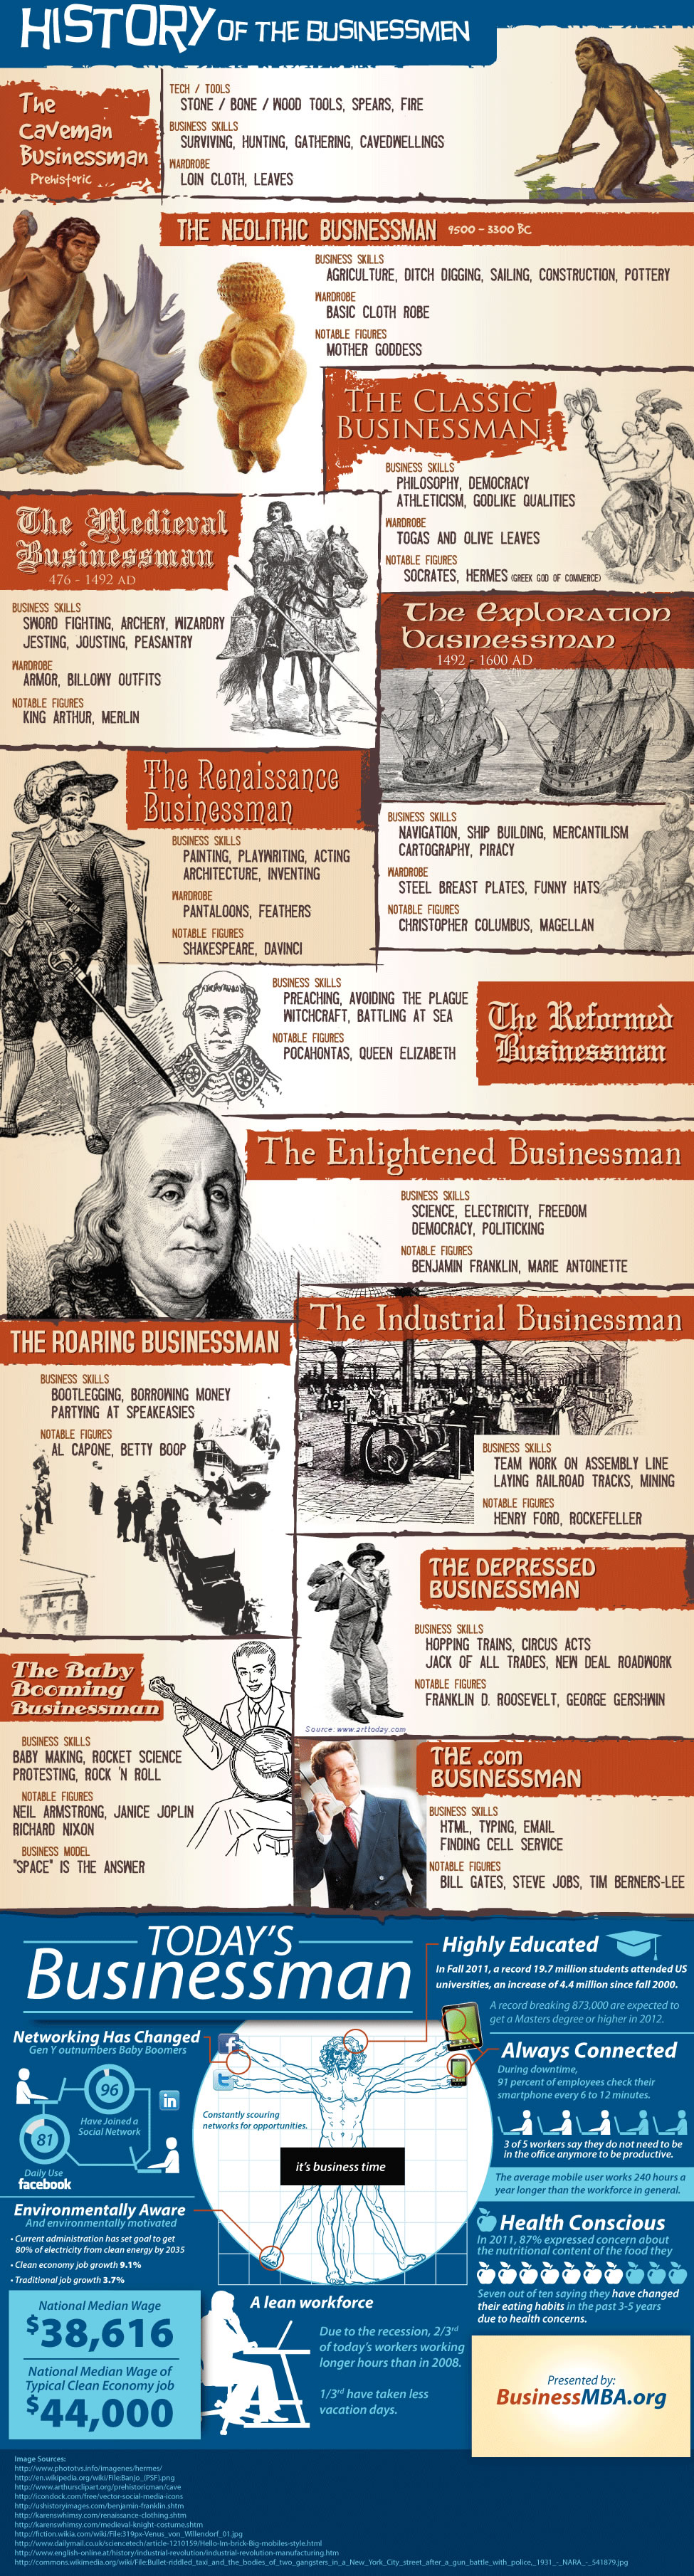 History of the Businessman